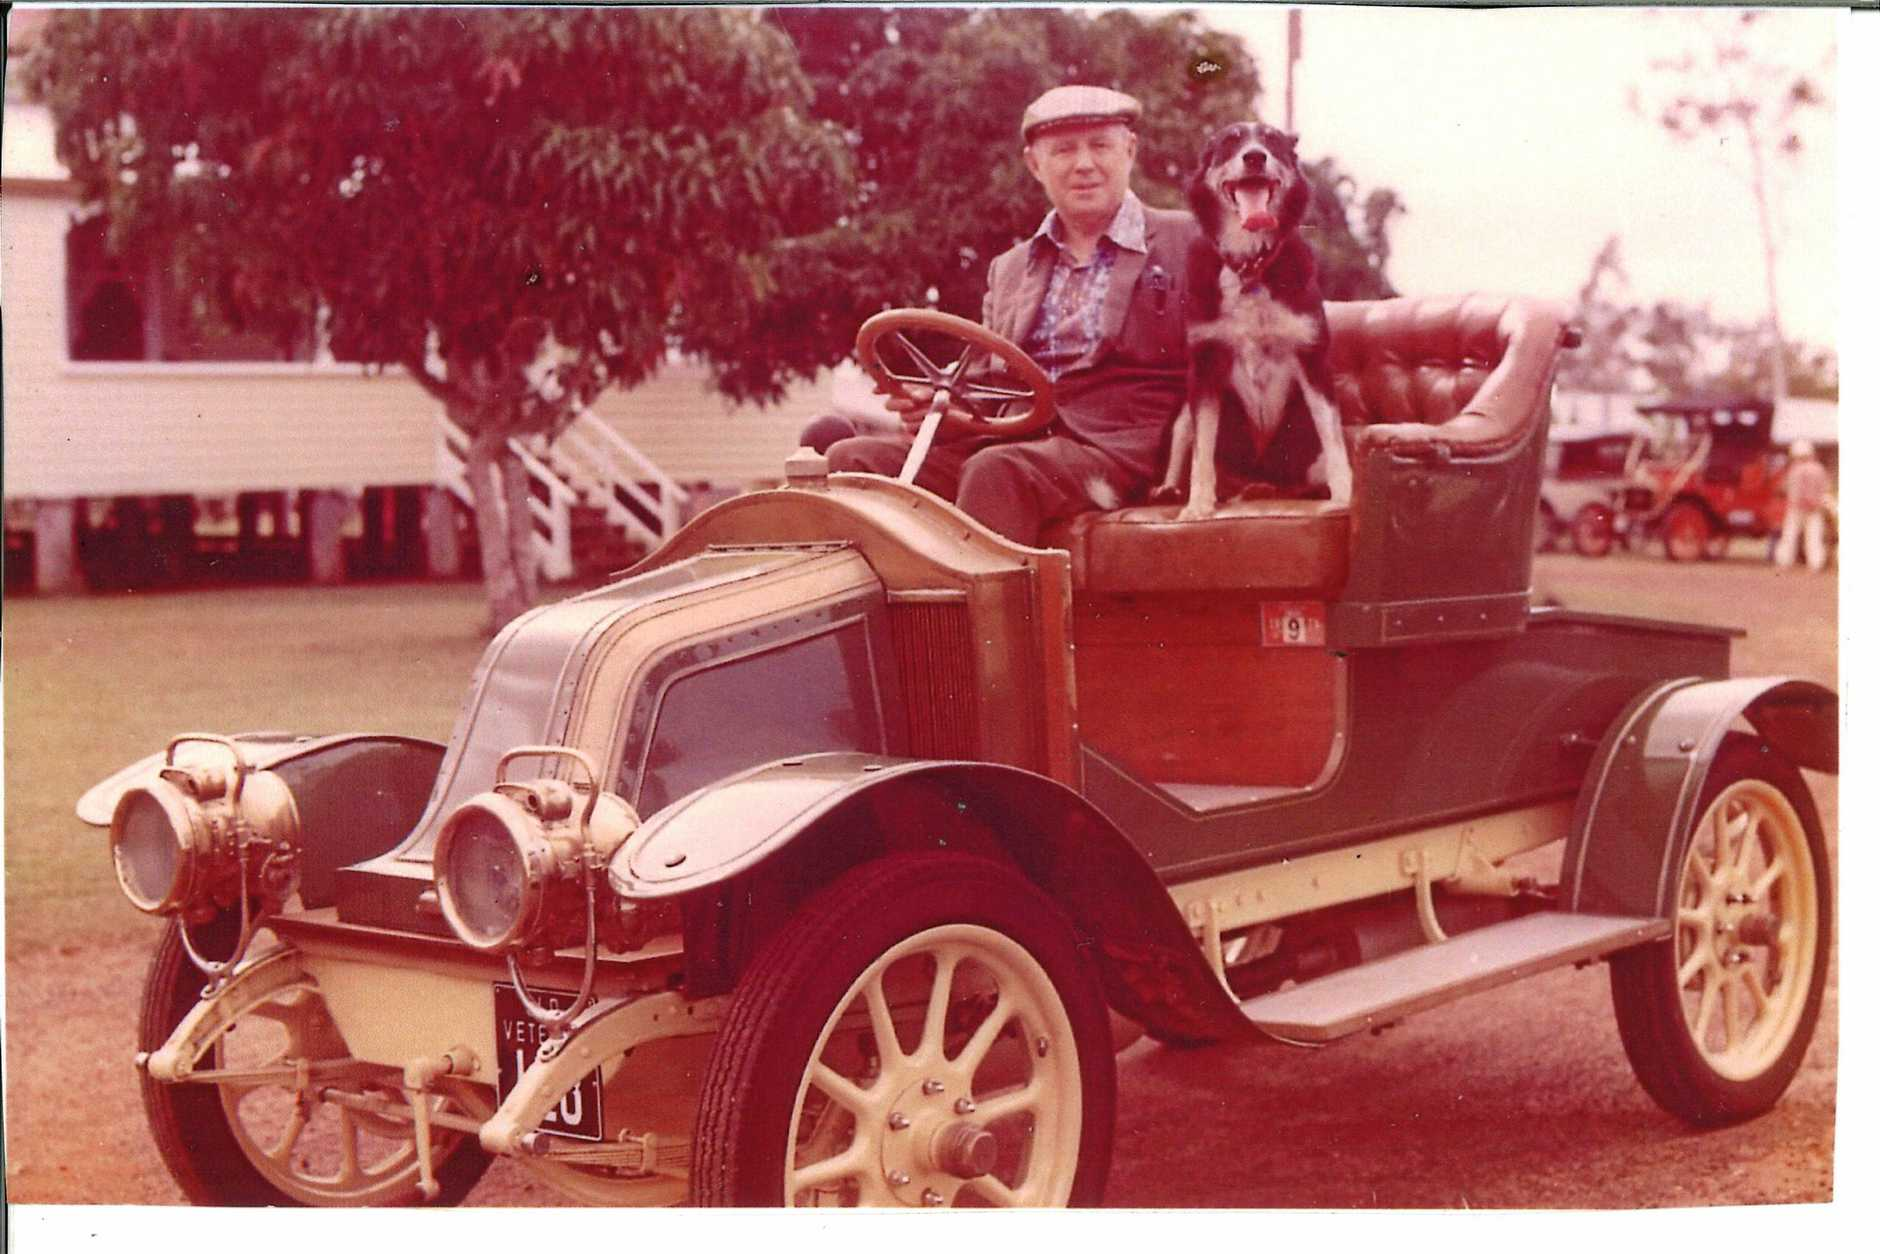 The late Sam Hecker, former patron of the Fraser Coast Historic Vehicle Club, with his dog sitting in his restored Didion.